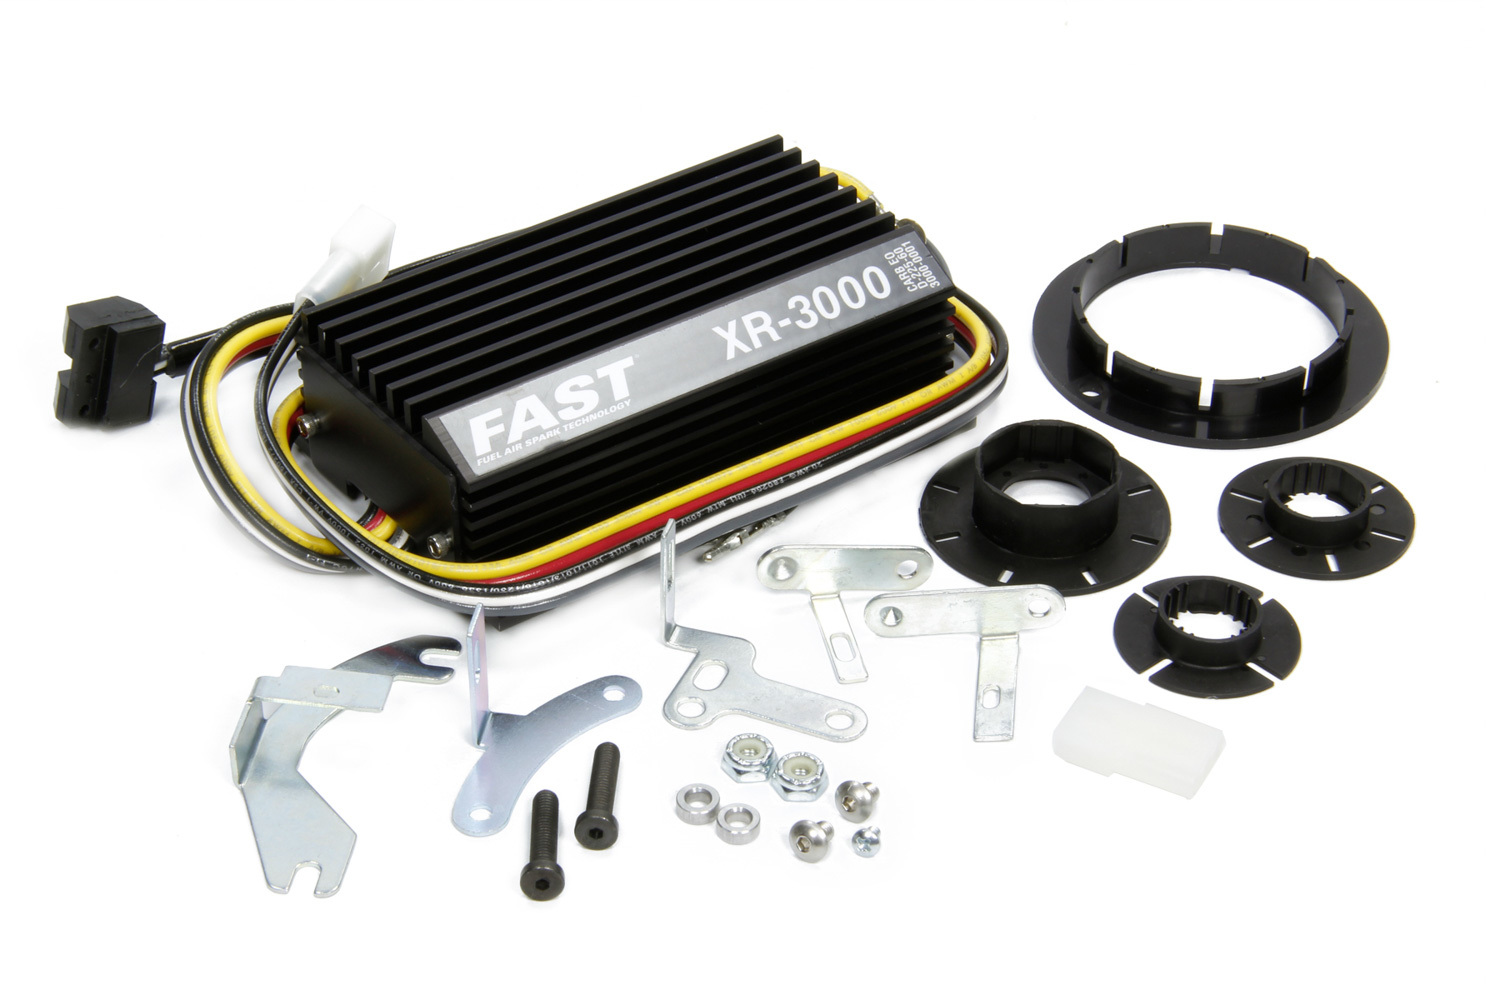 FAST 3000-0226 Ignition Conversion Kit, XR3000, Points to Electronic, Optical Trigger, Domestic 4 / 6 / 8-Cylinder / VW / Bosch 009 Distributor, Kit